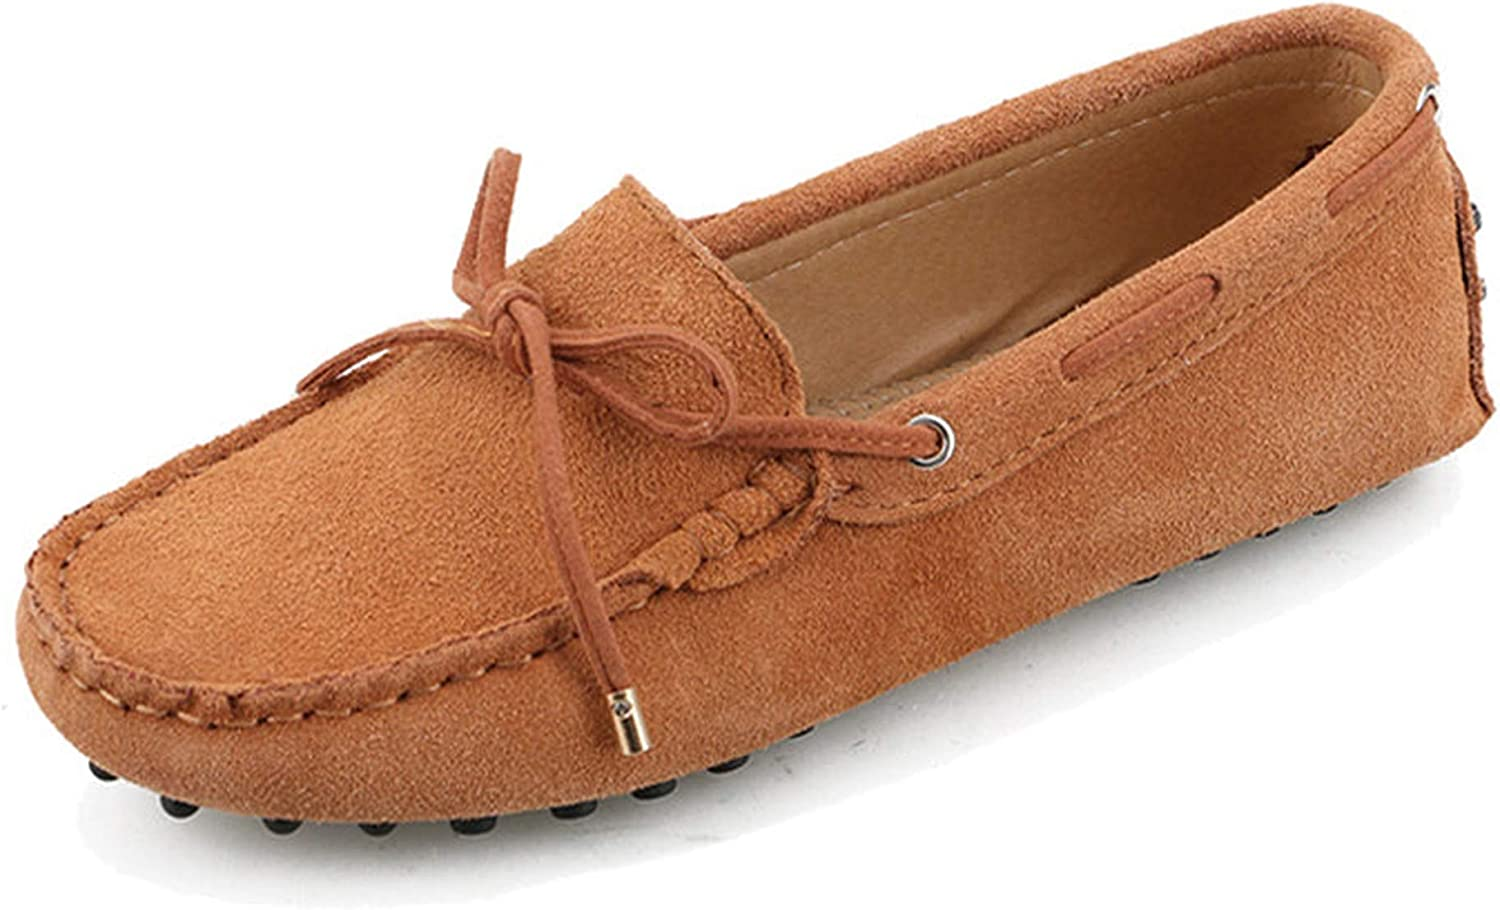 Rseobl New Women Genuine Leather Flats shoes Casual Slip On Loafers Driving shoes Ladies Bow Flat shoes